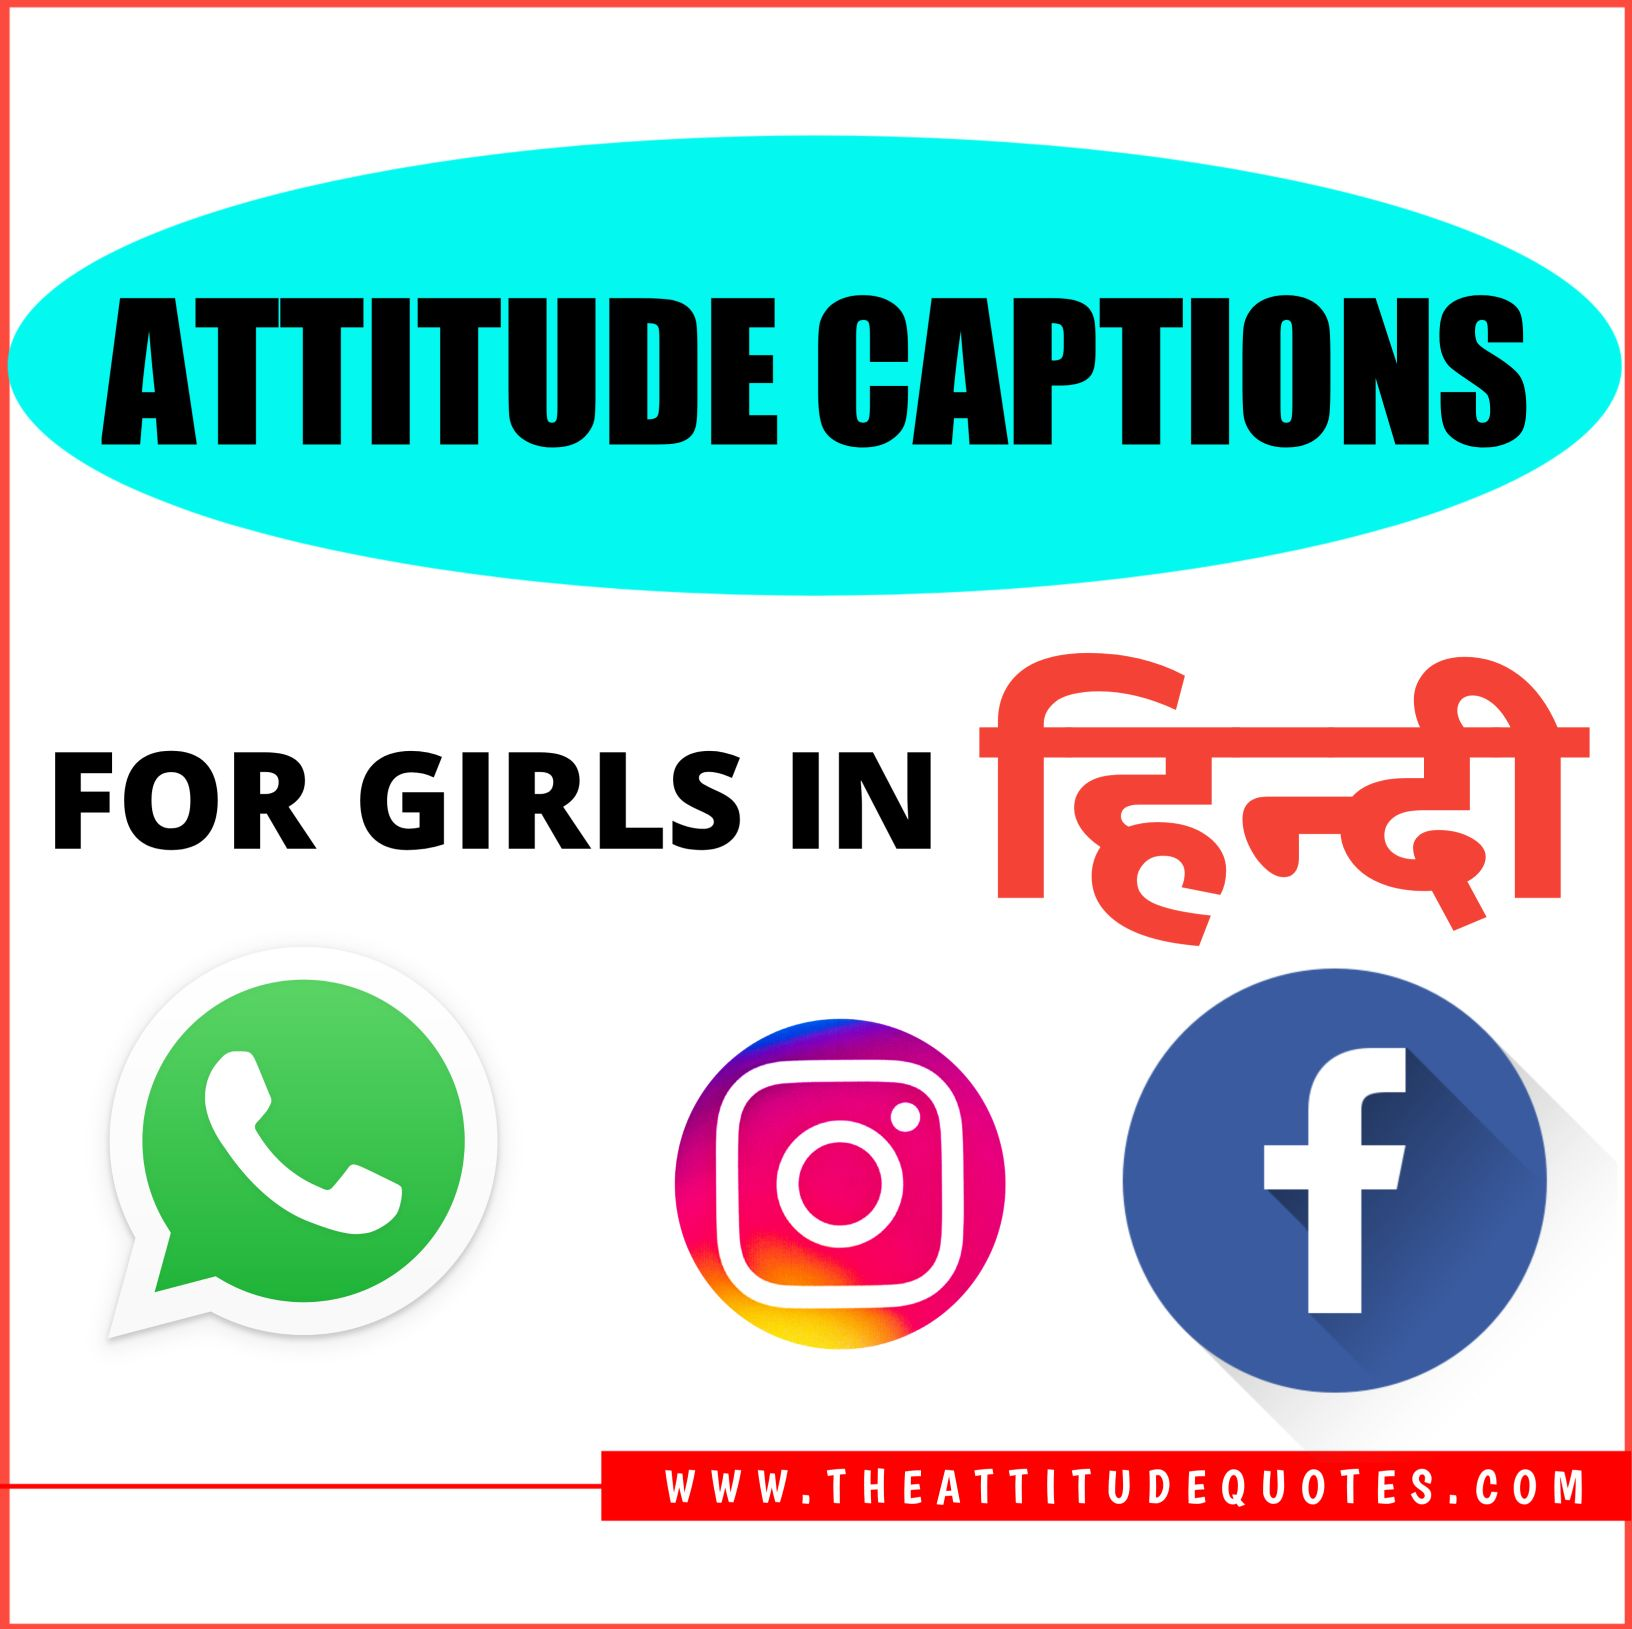 attitude status for girl in hindi for instagram, caption for girls in hindi, hindi caption for girls, attitude caption for girls in hindi, instagram captions for girls in hindi, captions for girls in hindi, attitude caption in hindi for girl, instagram status in hindi for girl, attitude captions for girls in hindi, hindi captions for instagram for girls, best quotes for girls in hindi, attitude caption for instagram for girl in hindi, caption in hindi for girls, cute captions for girls in hindi, beautiful quotes for girls in hindi, captions for instagram for girls in hindi, girl quotes about life in hindi, captions for girls hindi, baby smile quotes in hindi, strong girl quotes in hindi, caption for instagram in hindi for girl